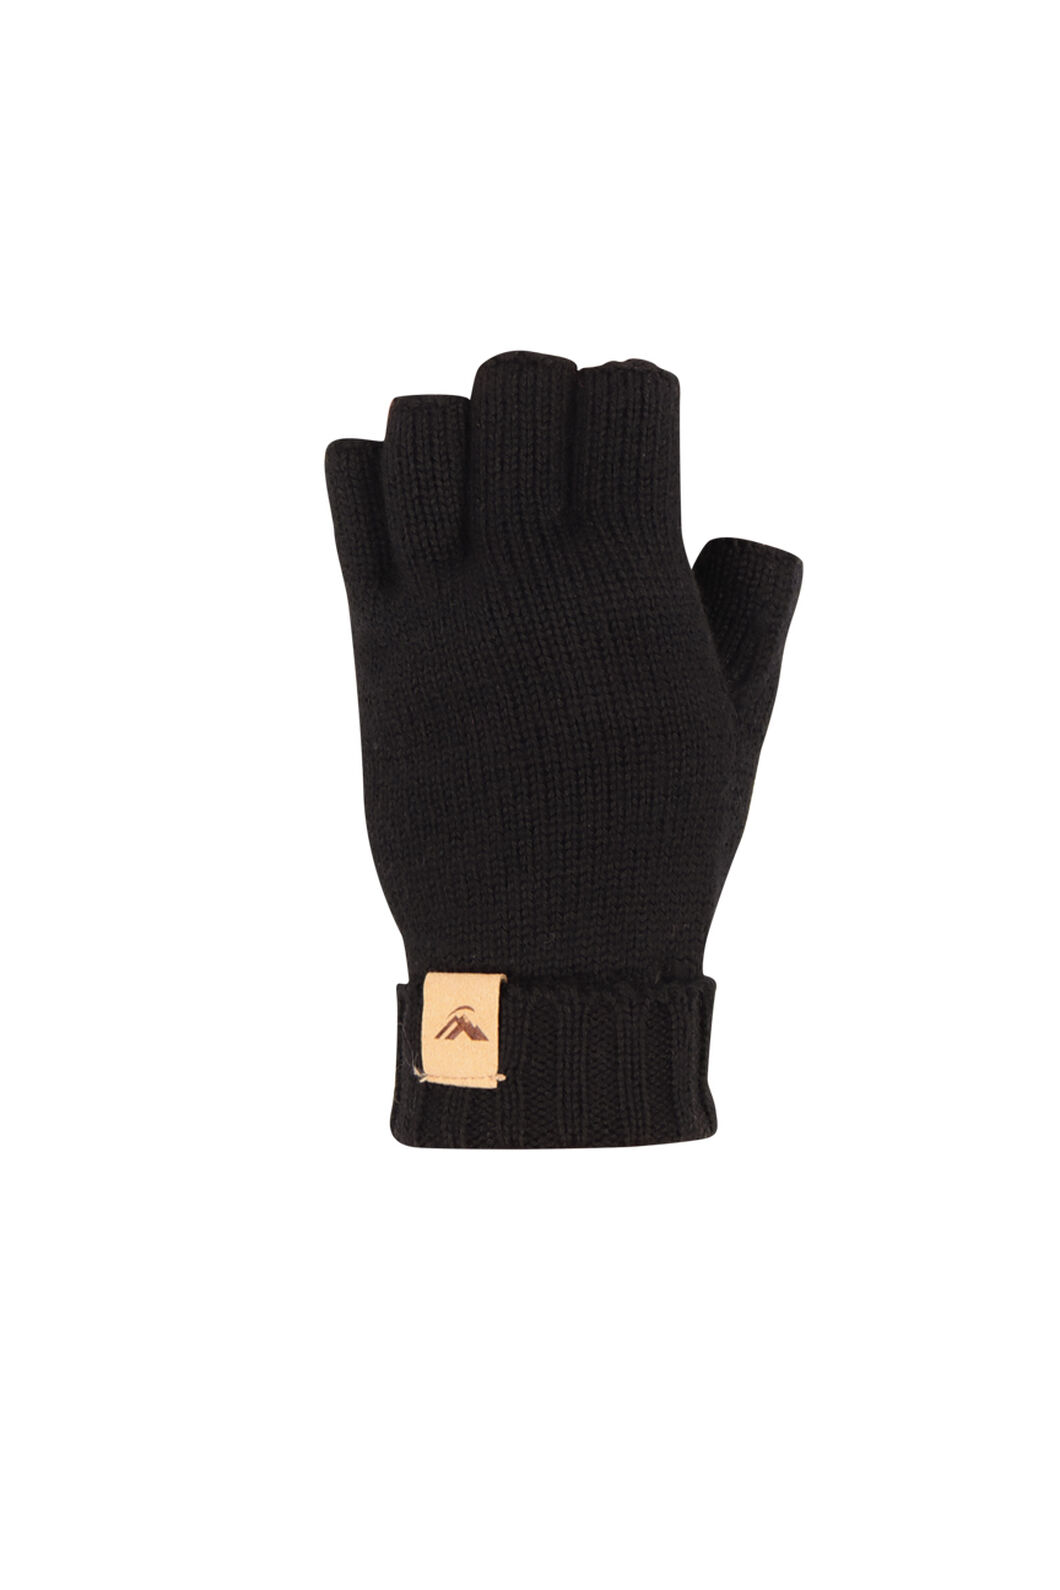 Macpac Merino Fingerless Gloves, Black, hi-res